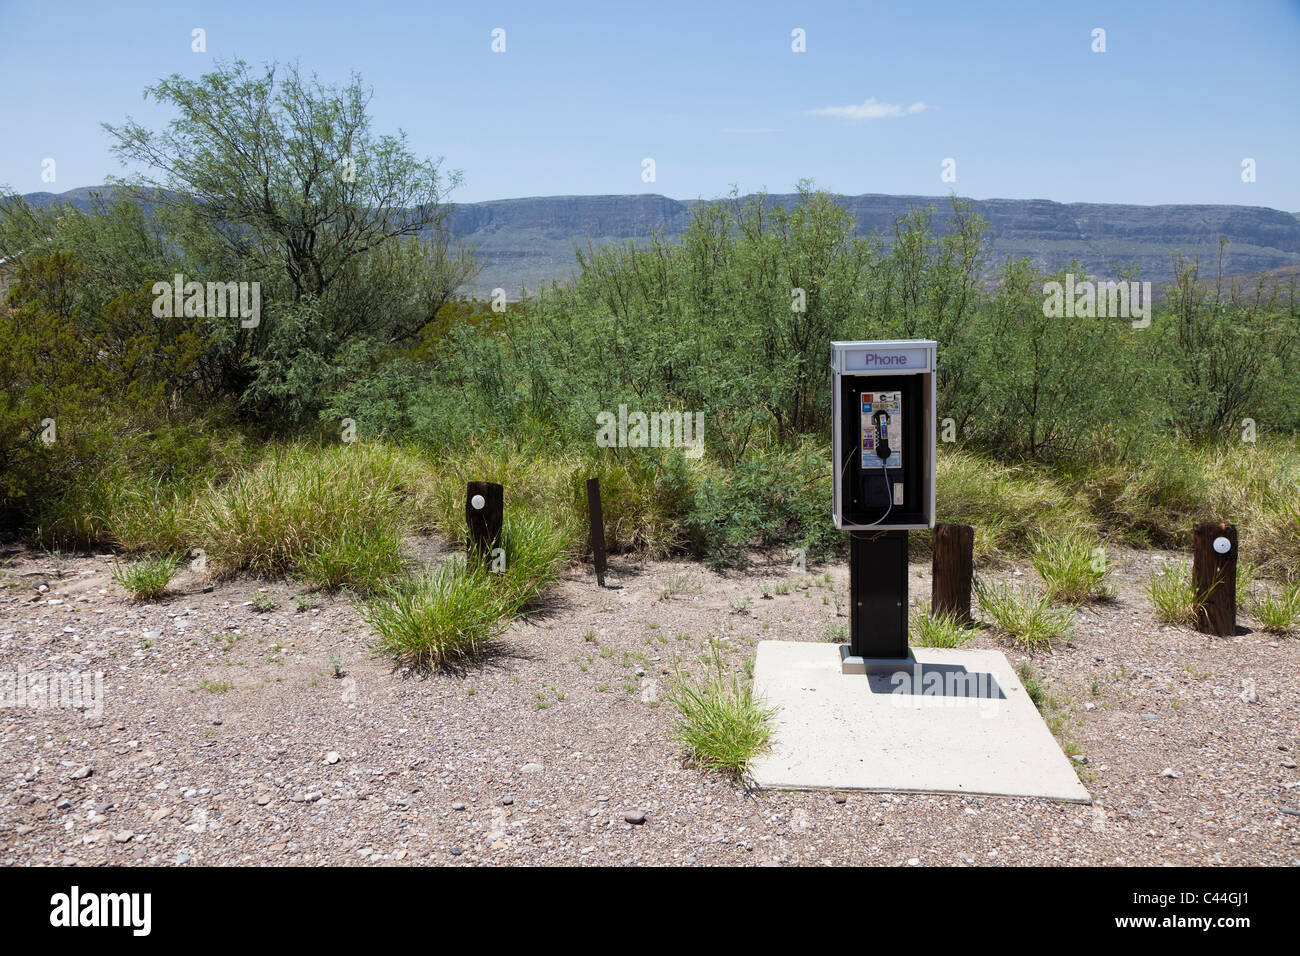 Payphone in desert at Castolon Big Bend National Park Texas USA - Stock Image